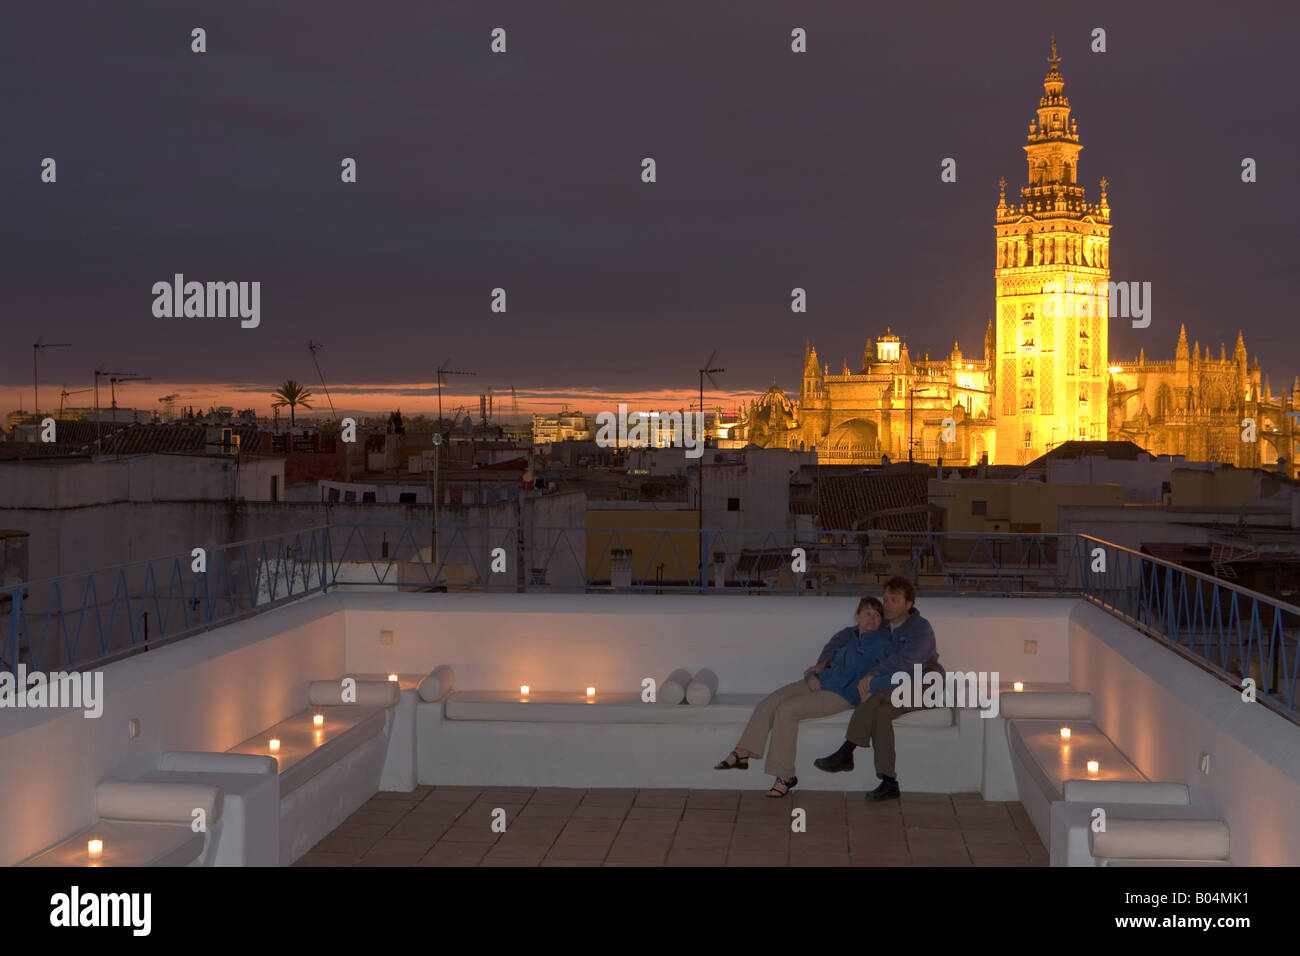 Ofertas Baños Arabes Sevilla Couple On The Terrace At Banos Arabes Aire De Sevilla With